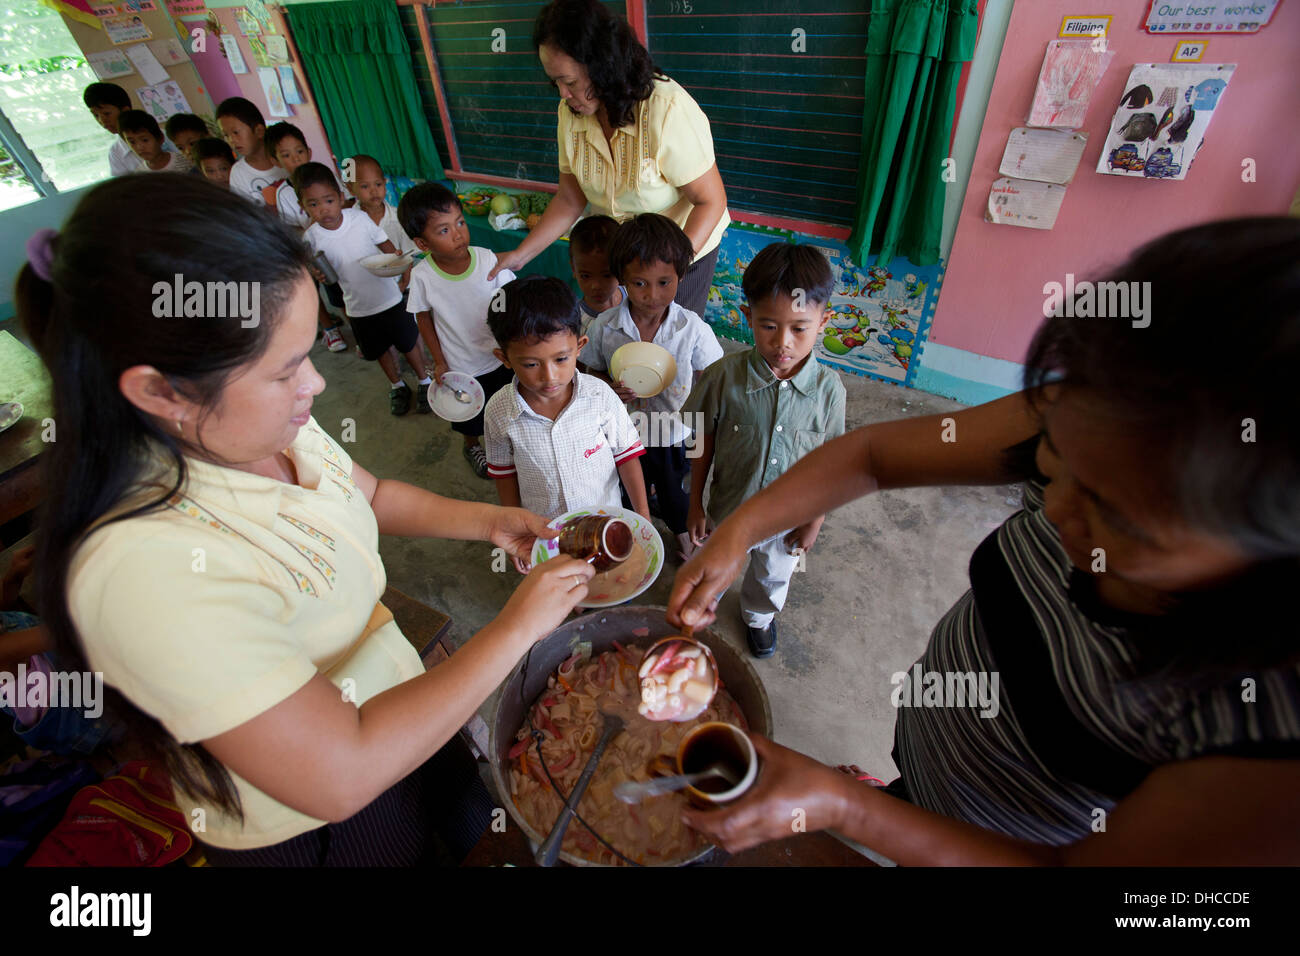 Children wait for a free lunch during a feeding program event at Wasig Elementary School in Wasig, Oriental Mindoro, Stock Photo